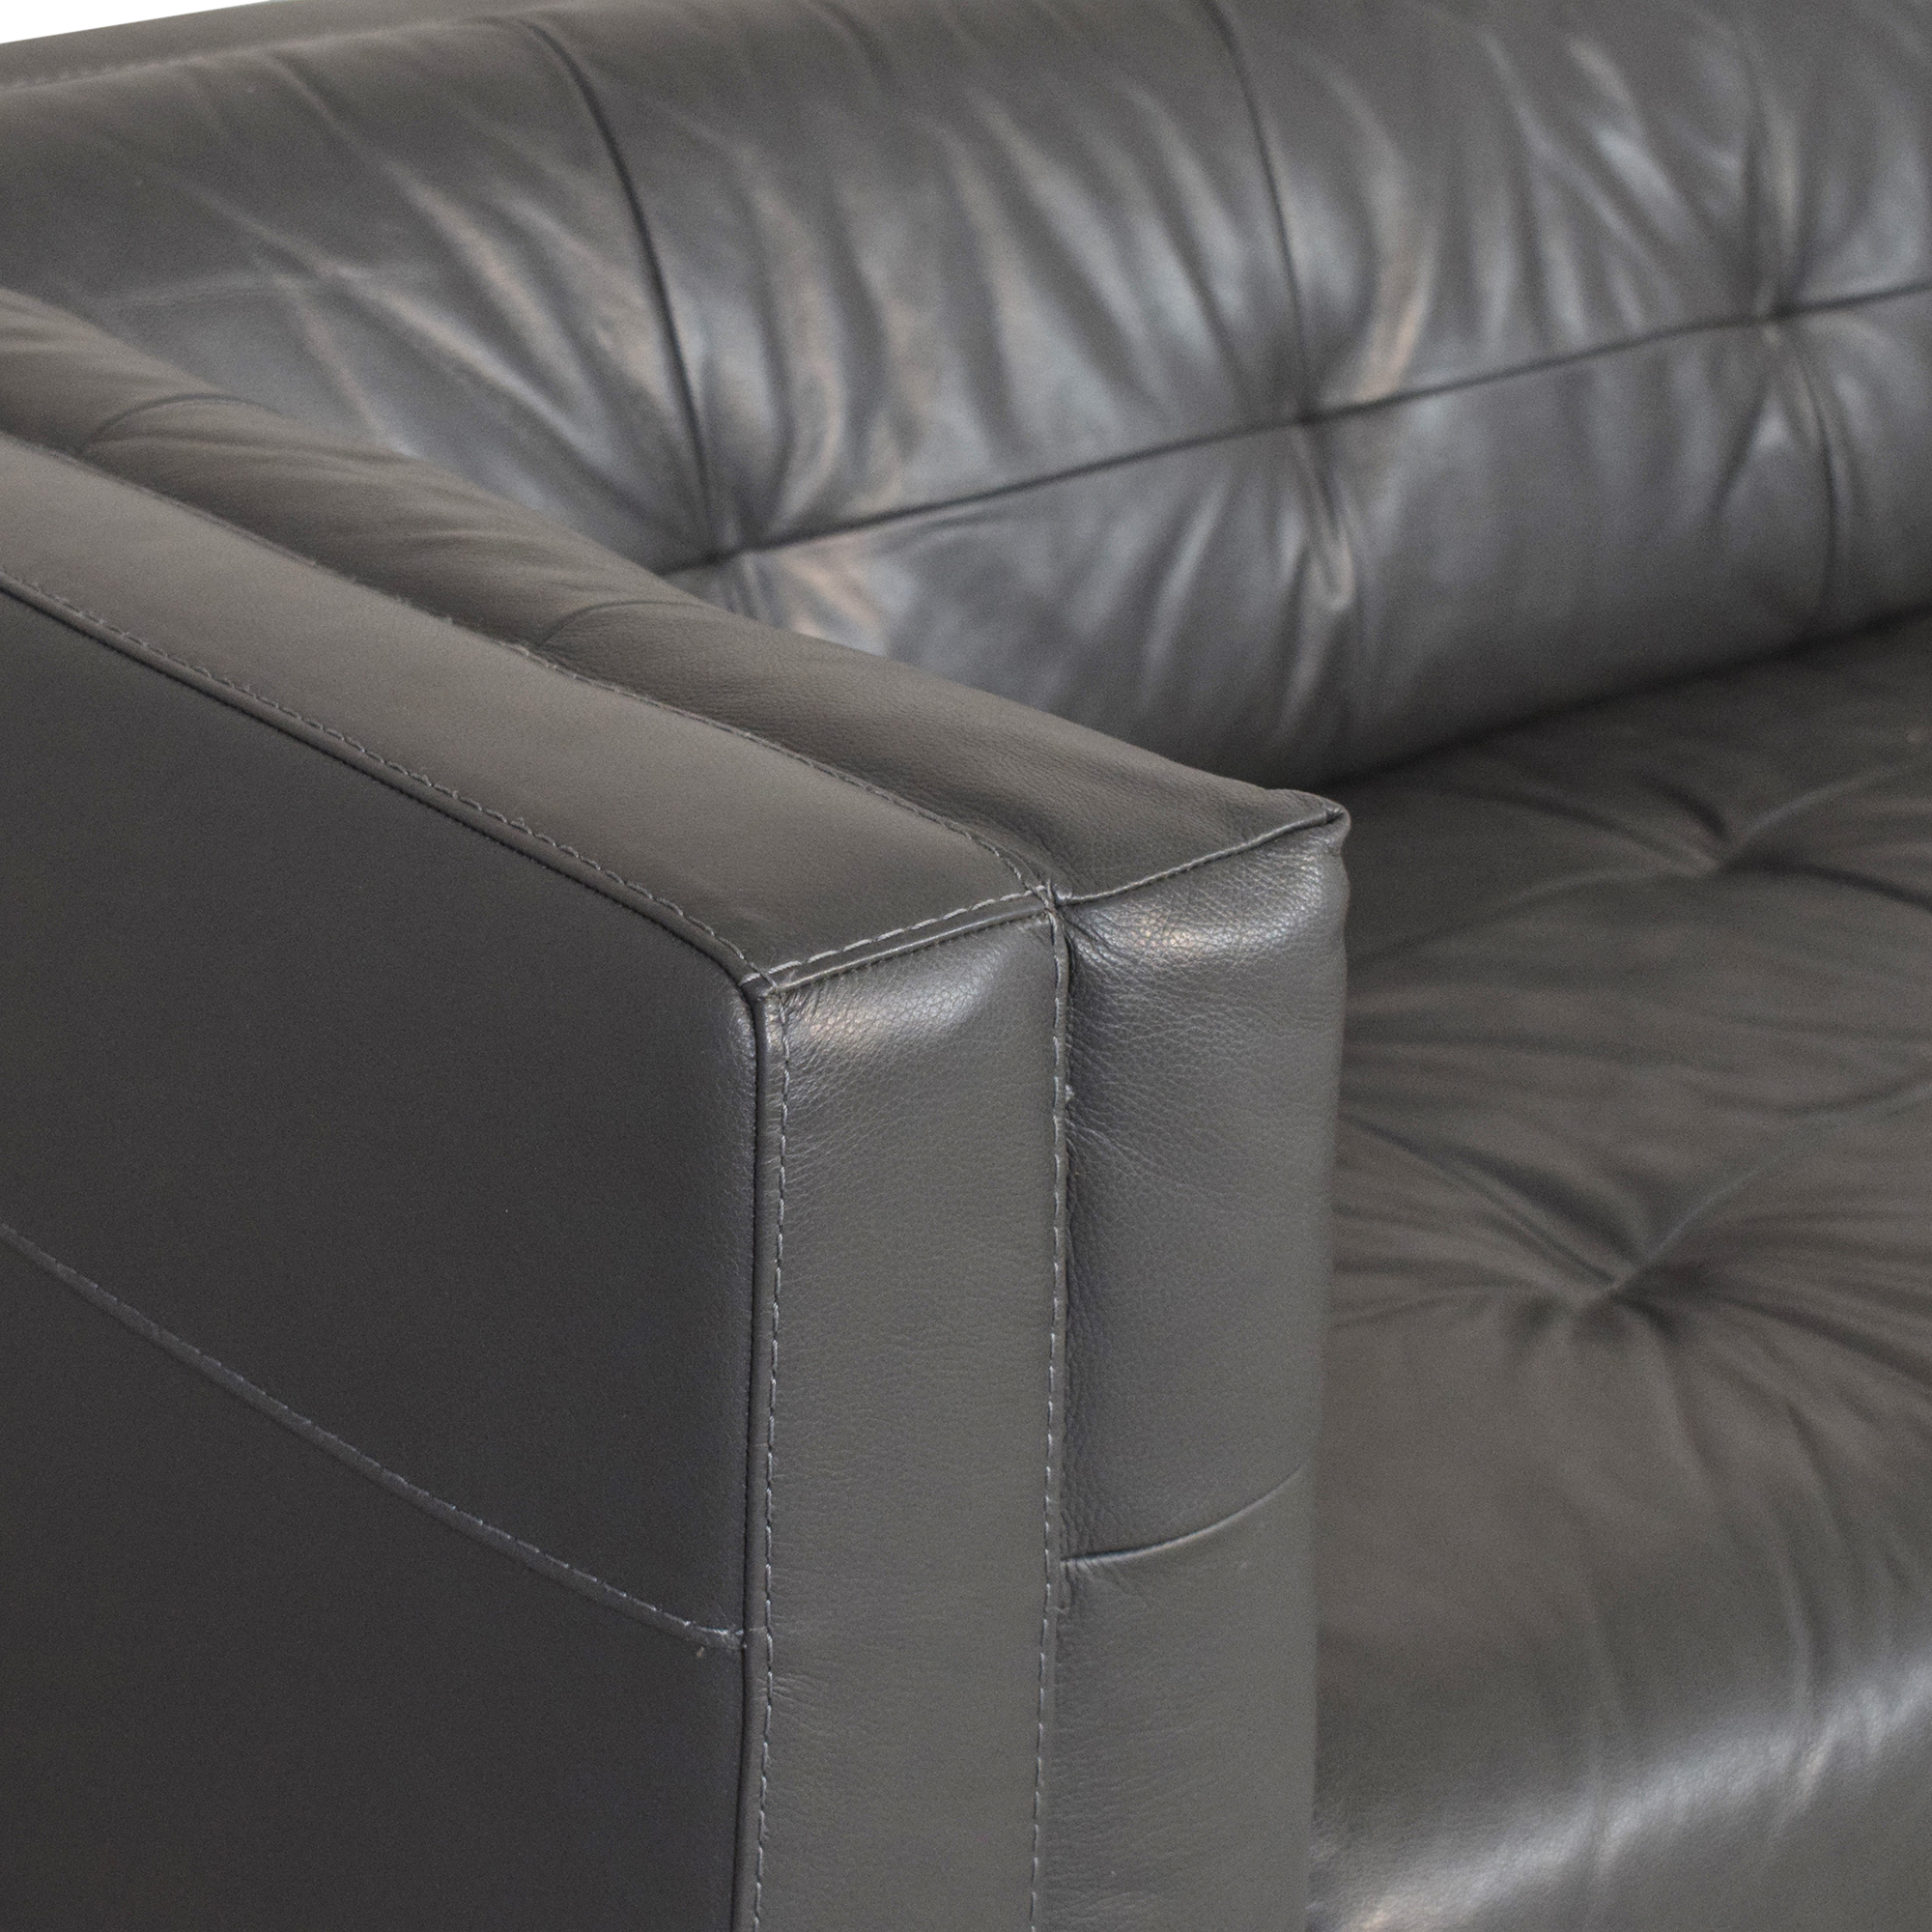 shop Chateau d'Ax Tufted Tuxedo Sofa Chateau d'Ax